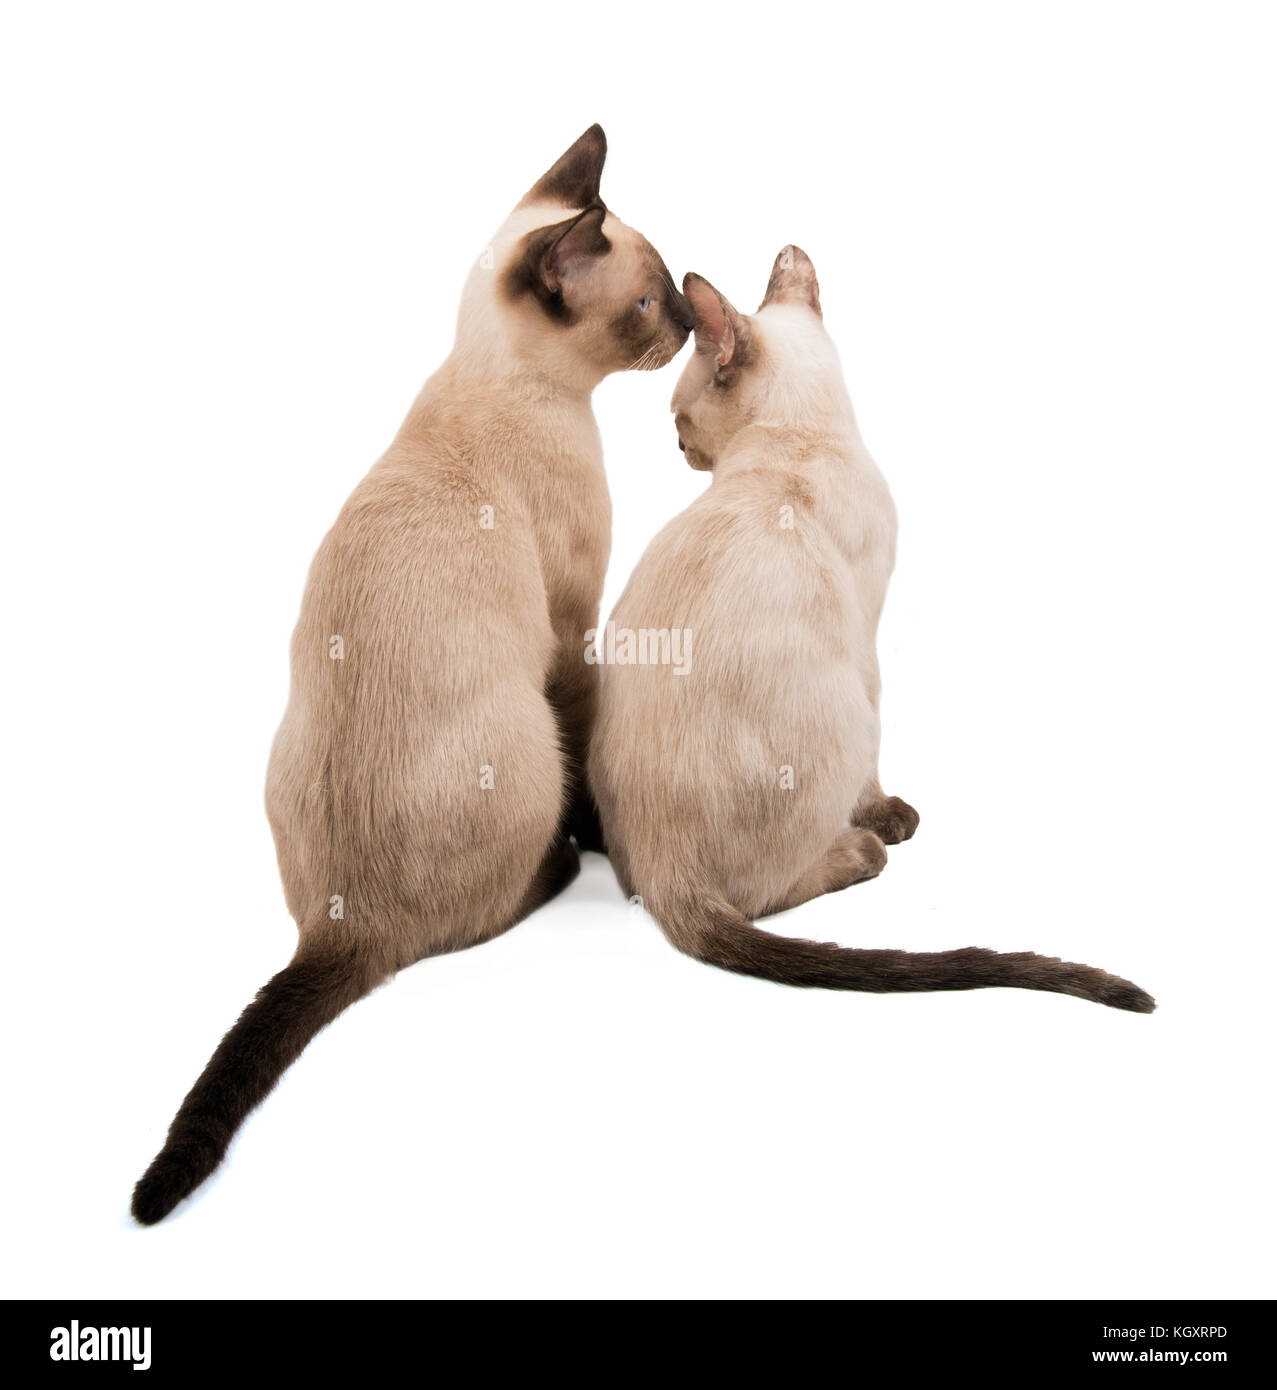 two young siamese cats sitting next to each other showing affection